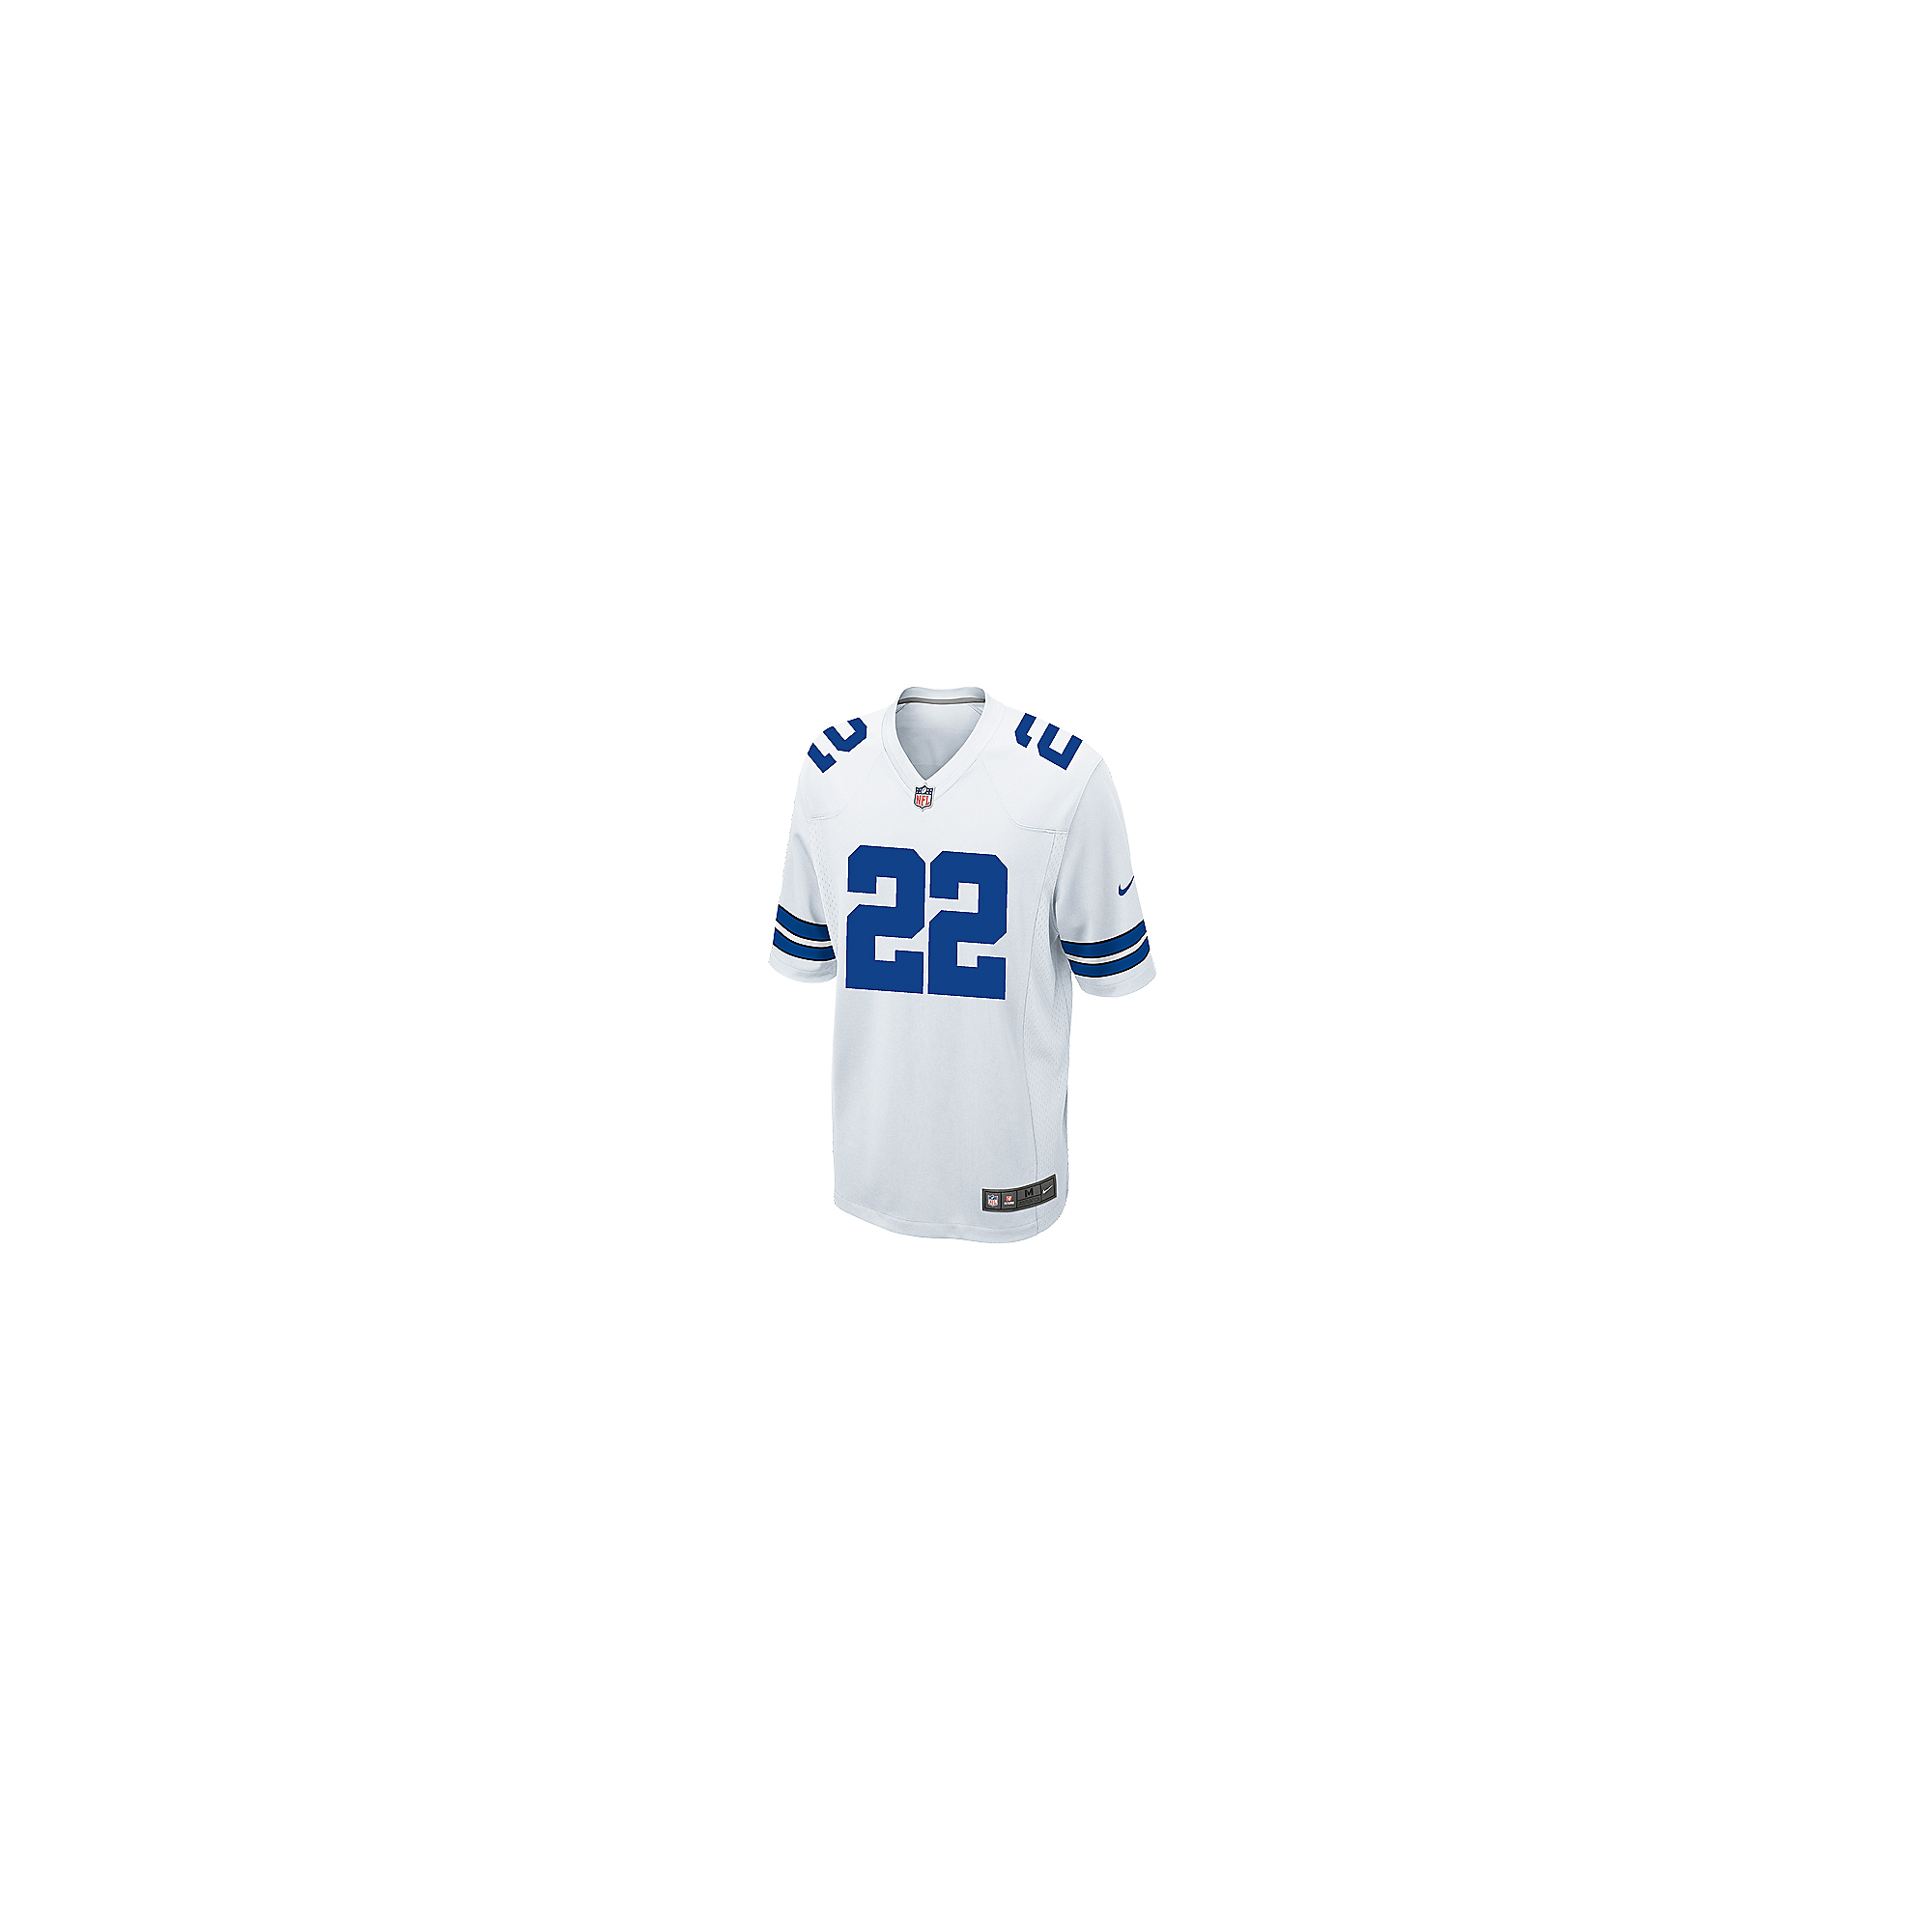 low priced a1d85 02961 Dallas Cowboys Legend Emmitt Smith Nike Game Replica Jersey ...